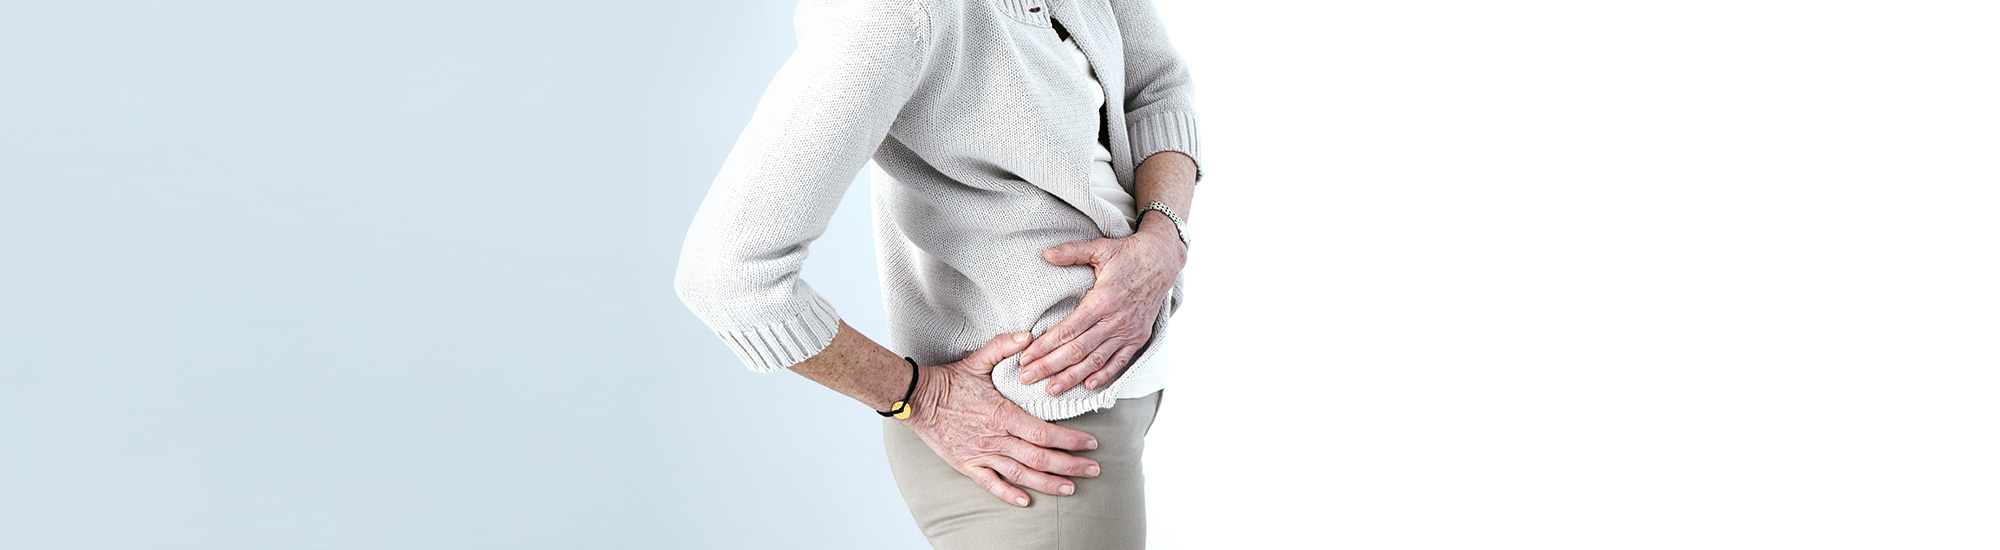 Ayurvedic treatment for What is Hip pain